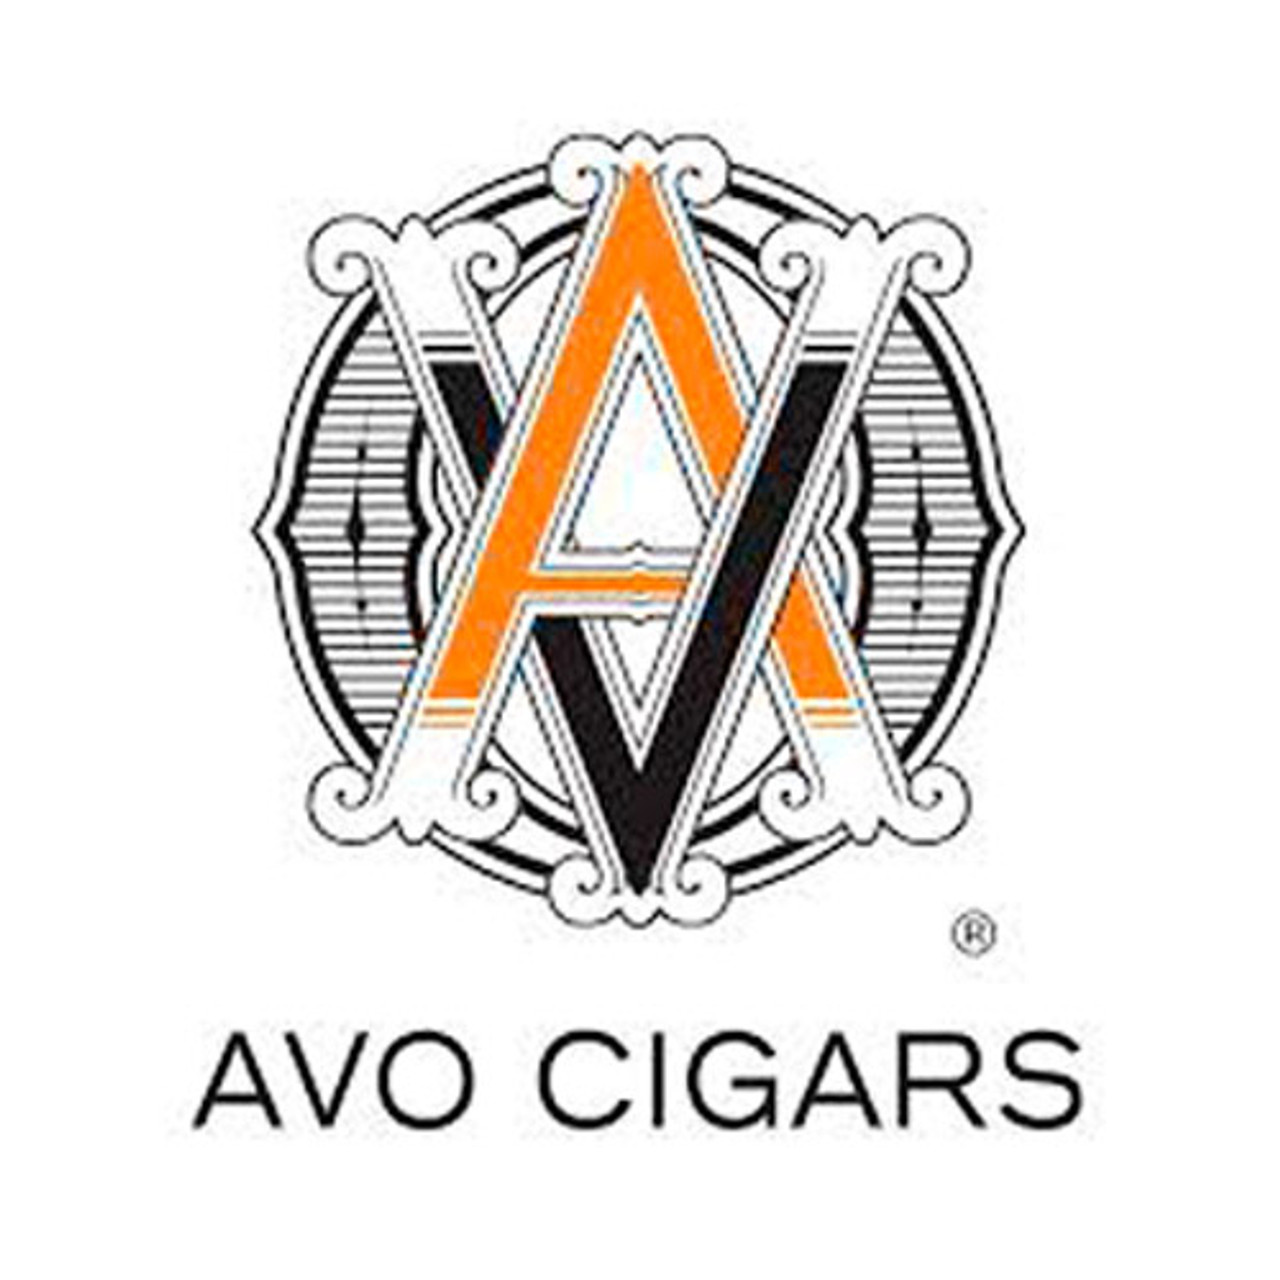 AVO Classic No. 6 Cigars - 6 x 60 (Box of 20)